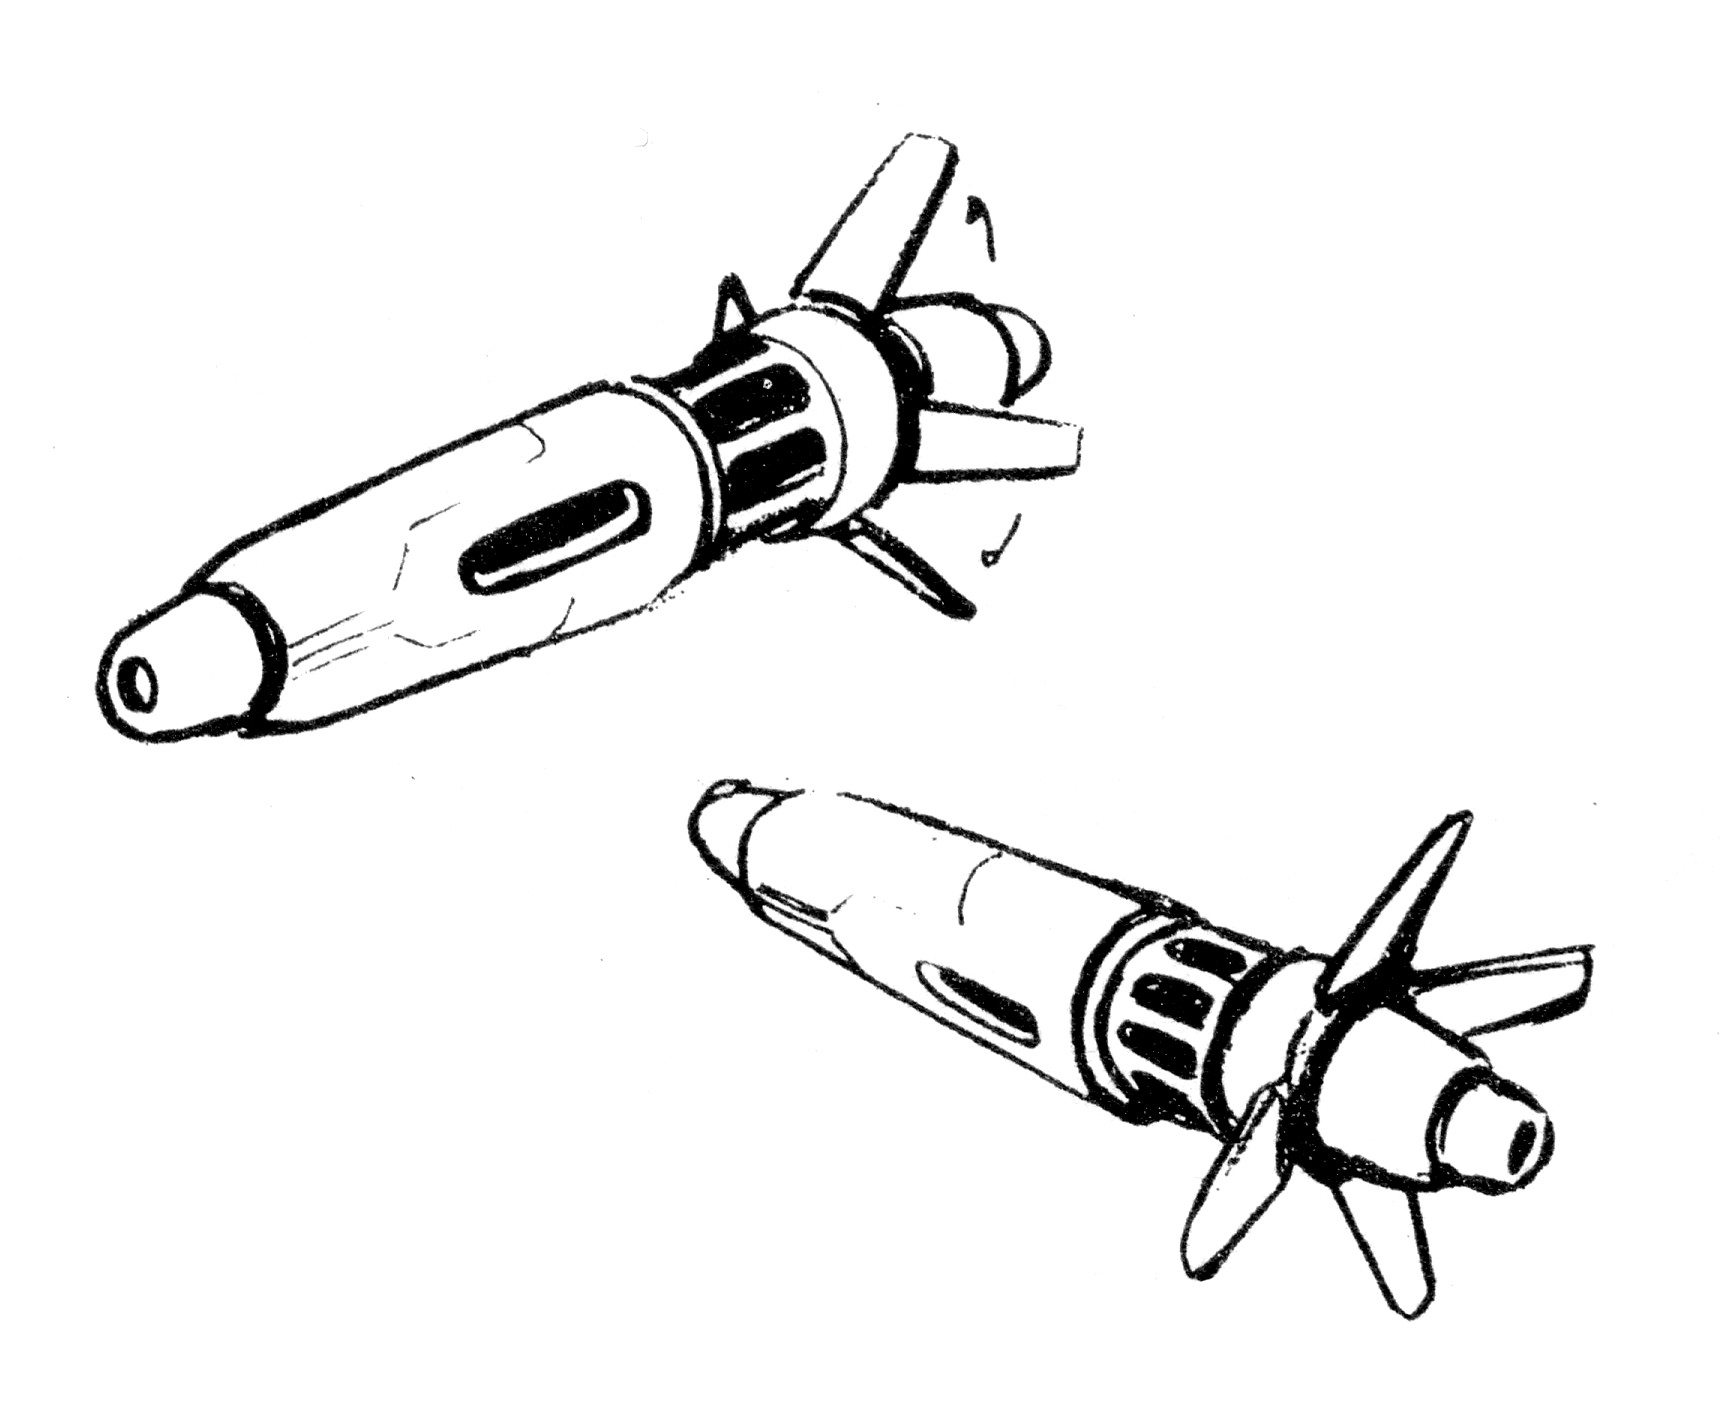 A-FP2 Gnerl Fighter Pod Aerospace Fighter Attack Plane 18